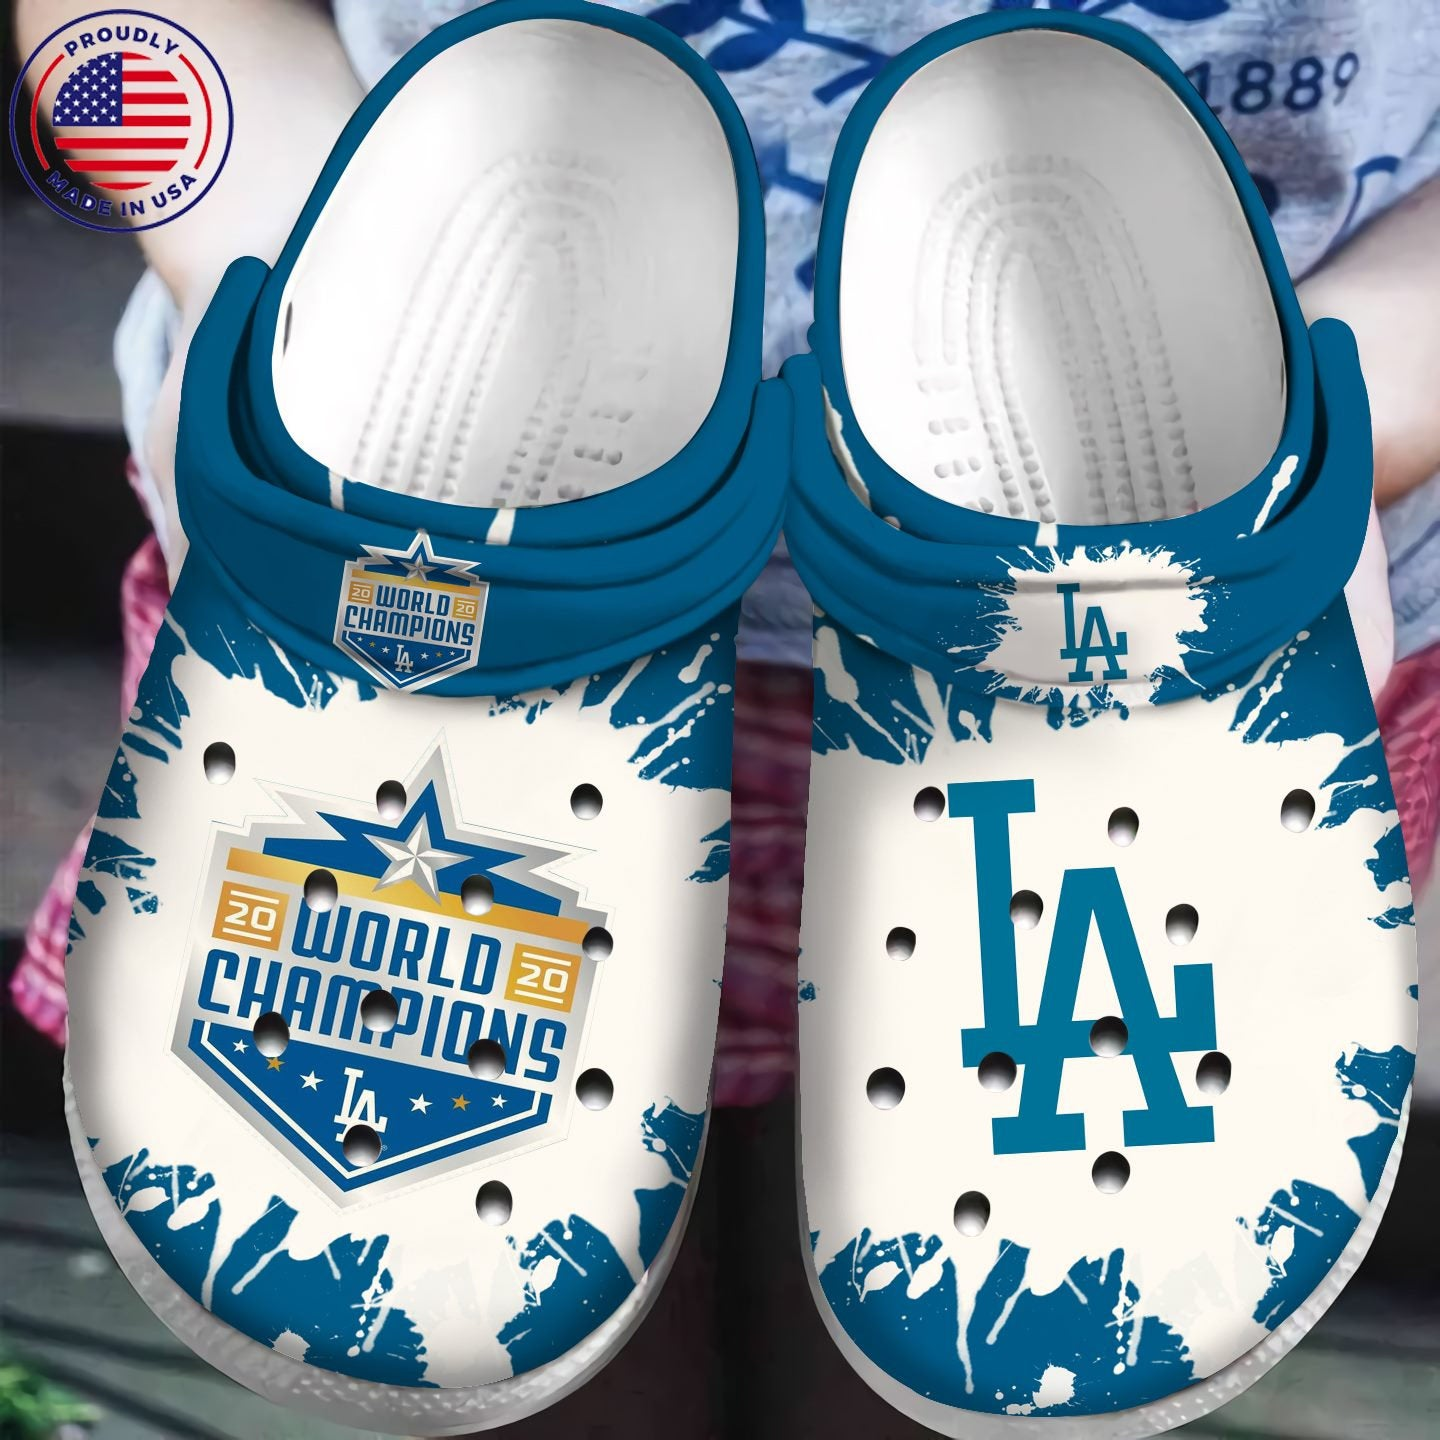 Los Angles Dodgers World Champions For Mlb Fans Crocs Clog Shoes